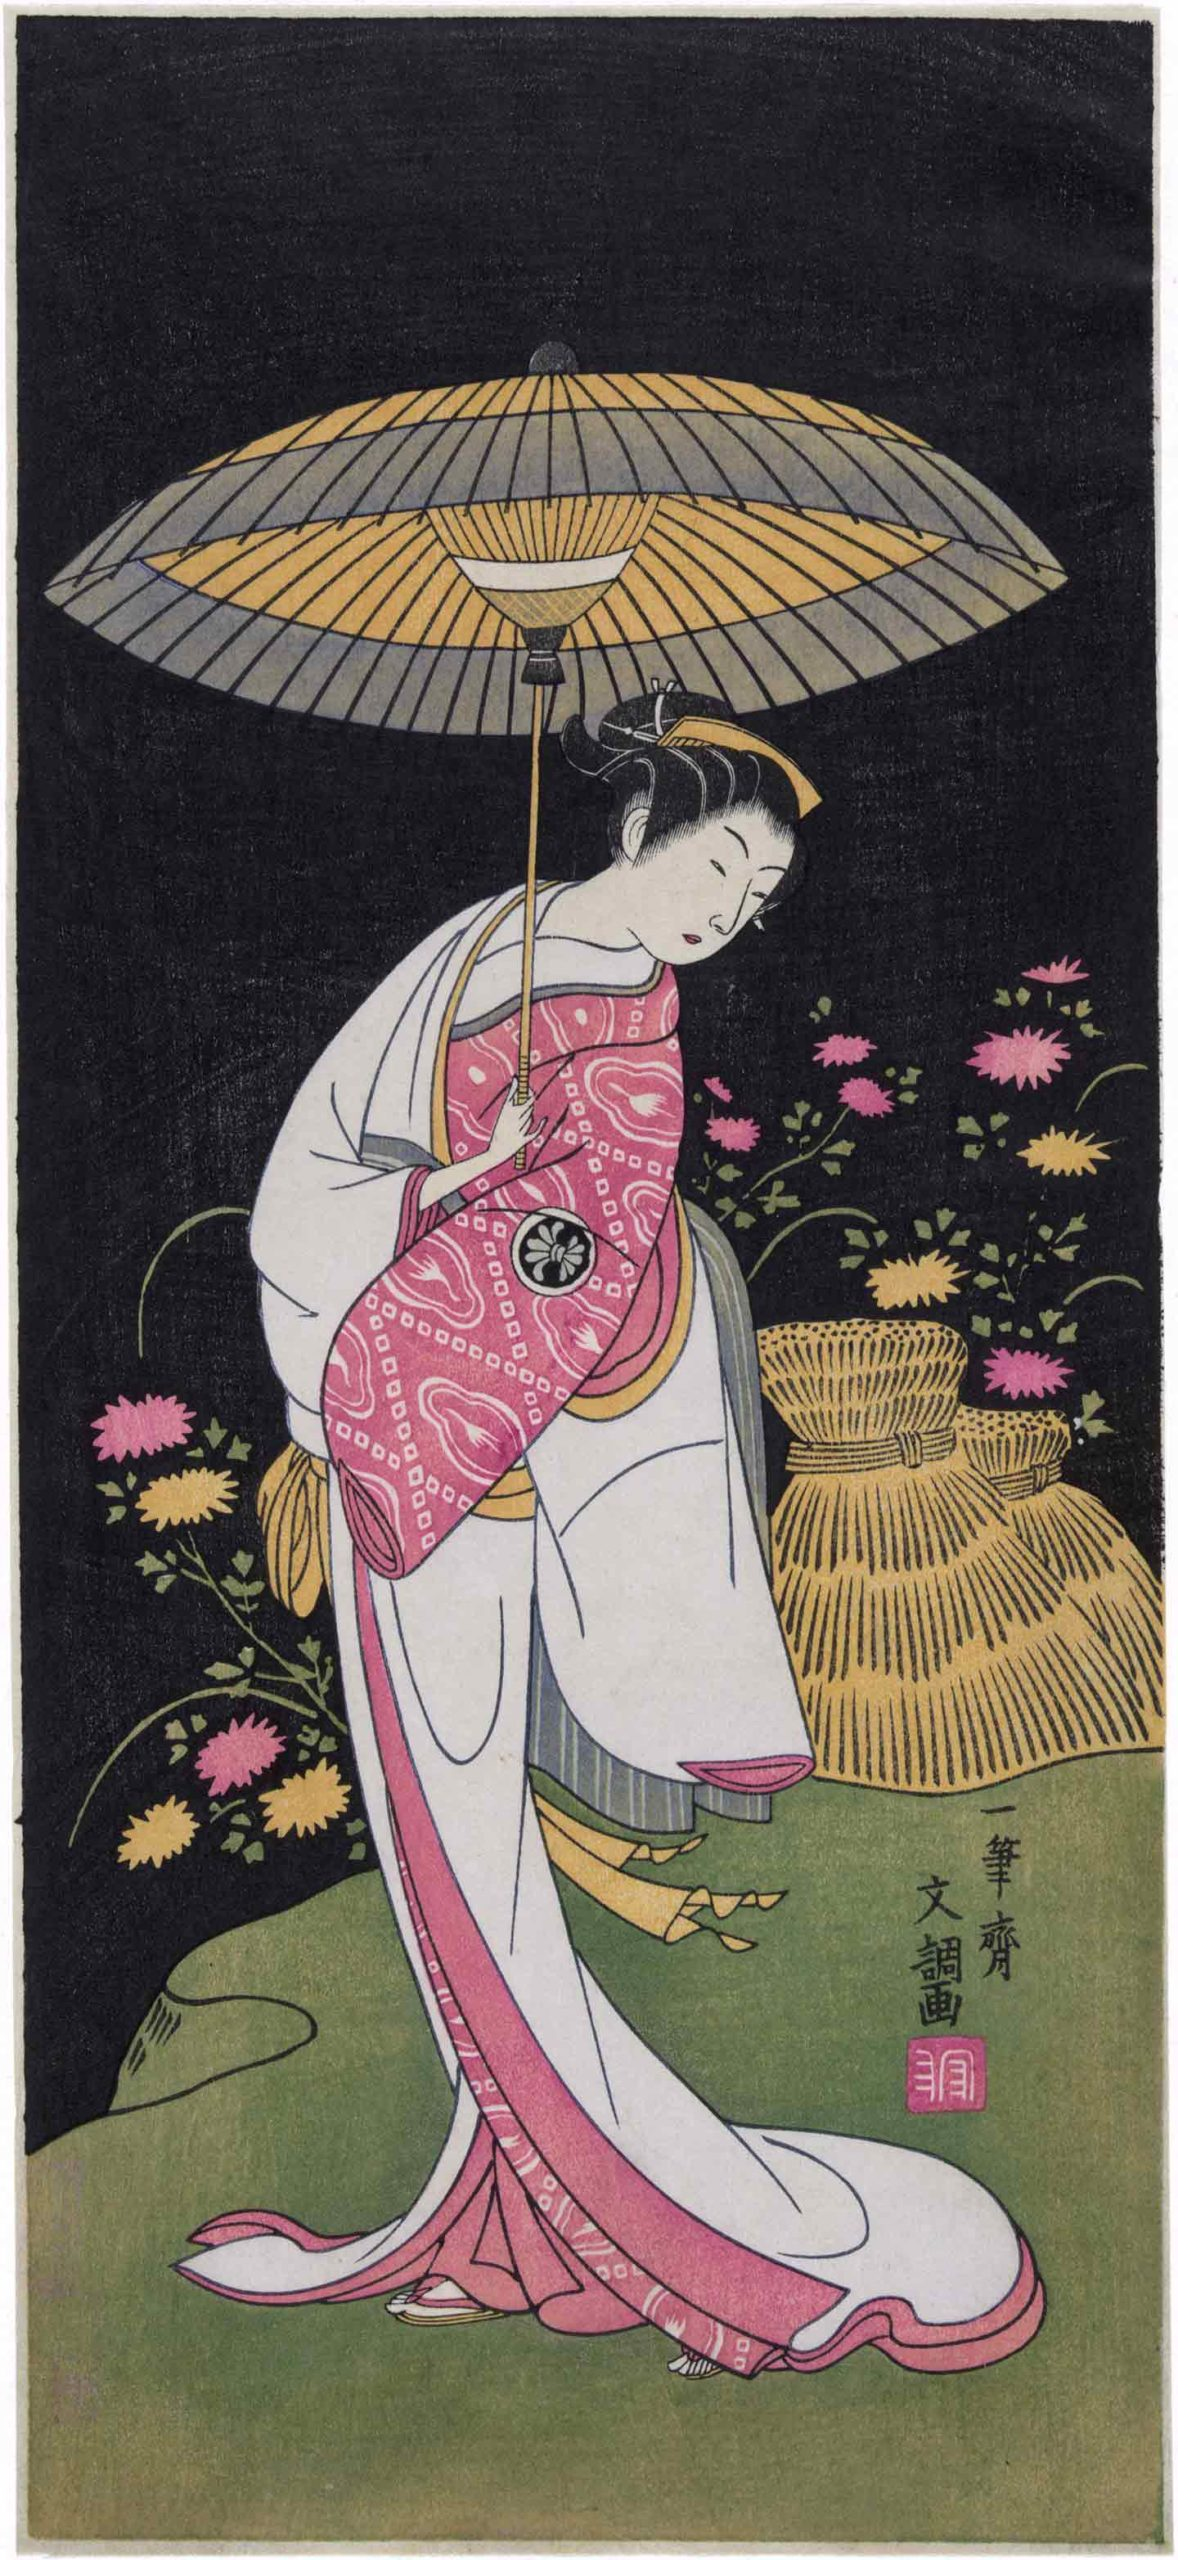 Print shows an actor portraying a woman holding an umbrella.